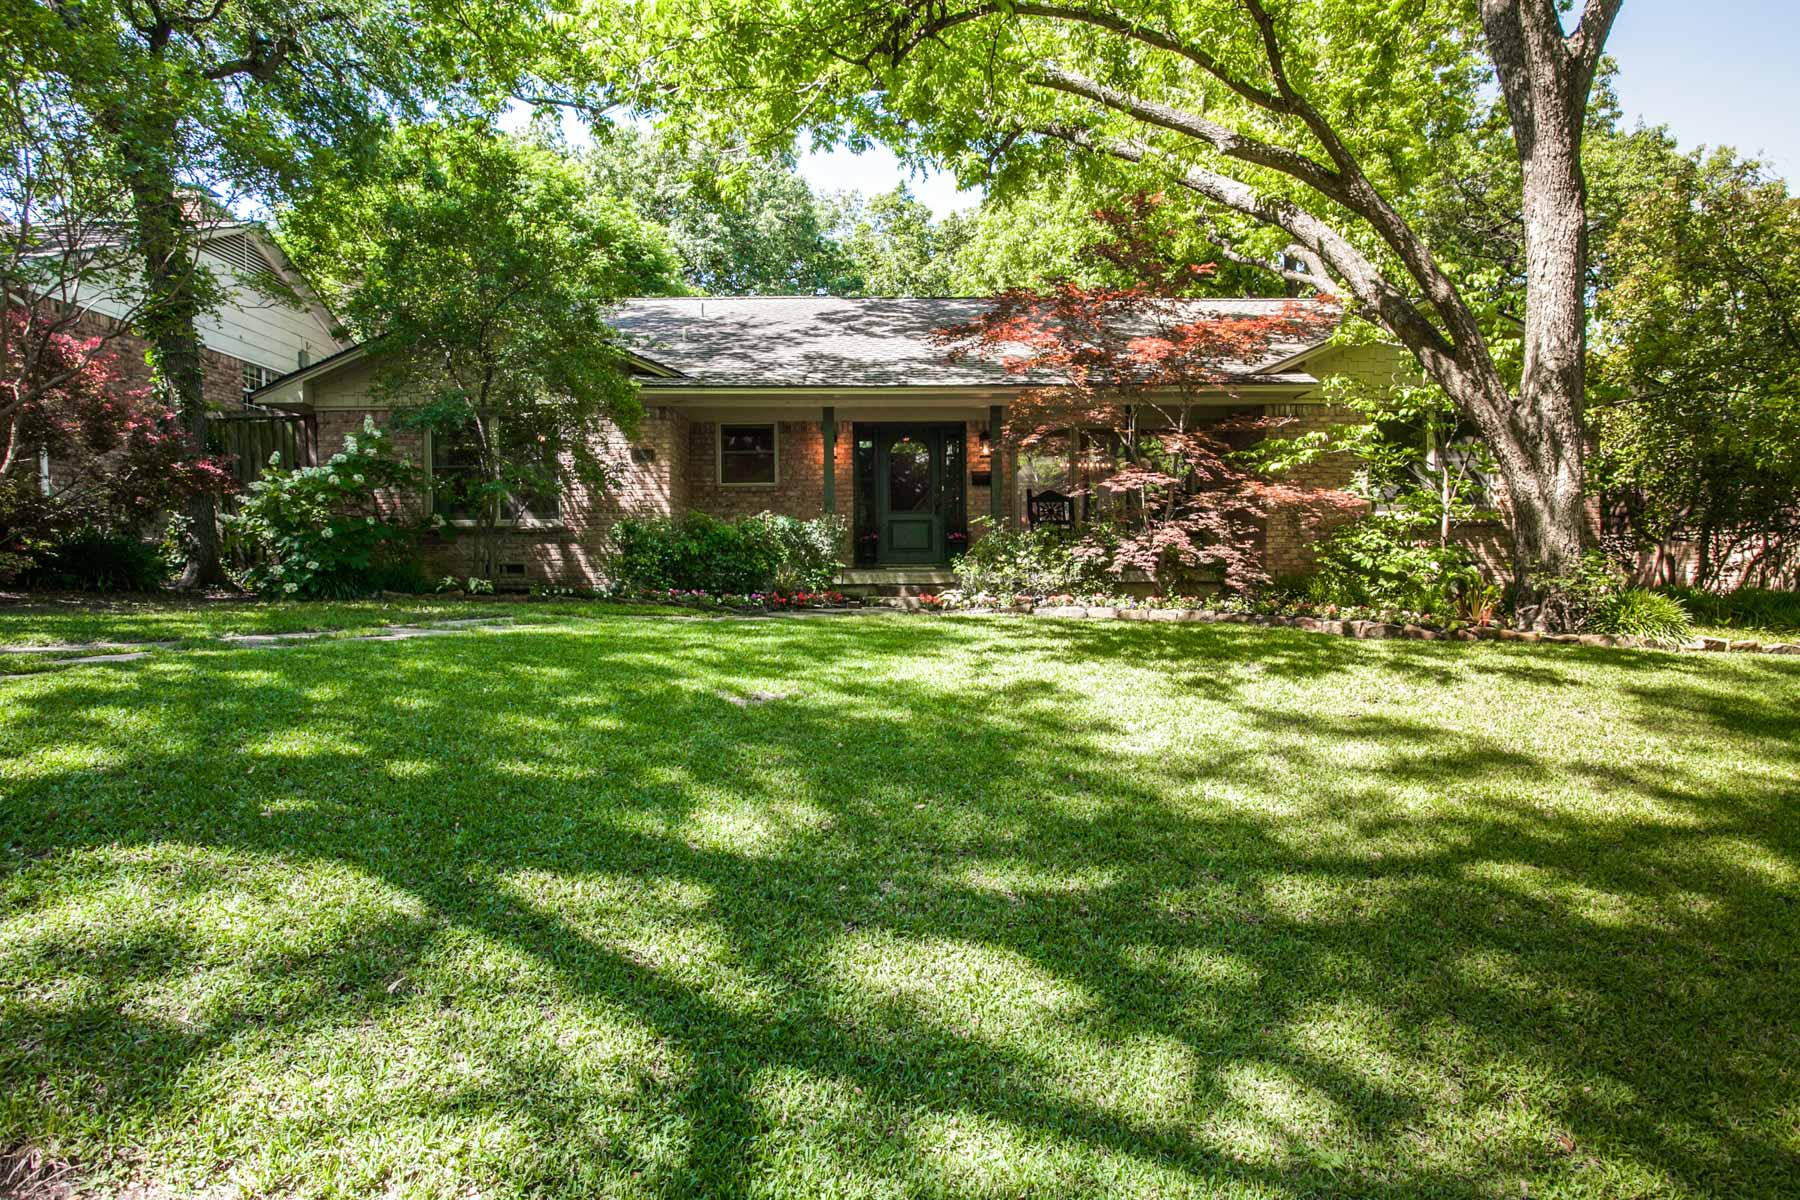 Single Family Home for Sale at Lake Highlands Gem 9254 Cliffmere Drive Dallas, Texas, 75238 United States